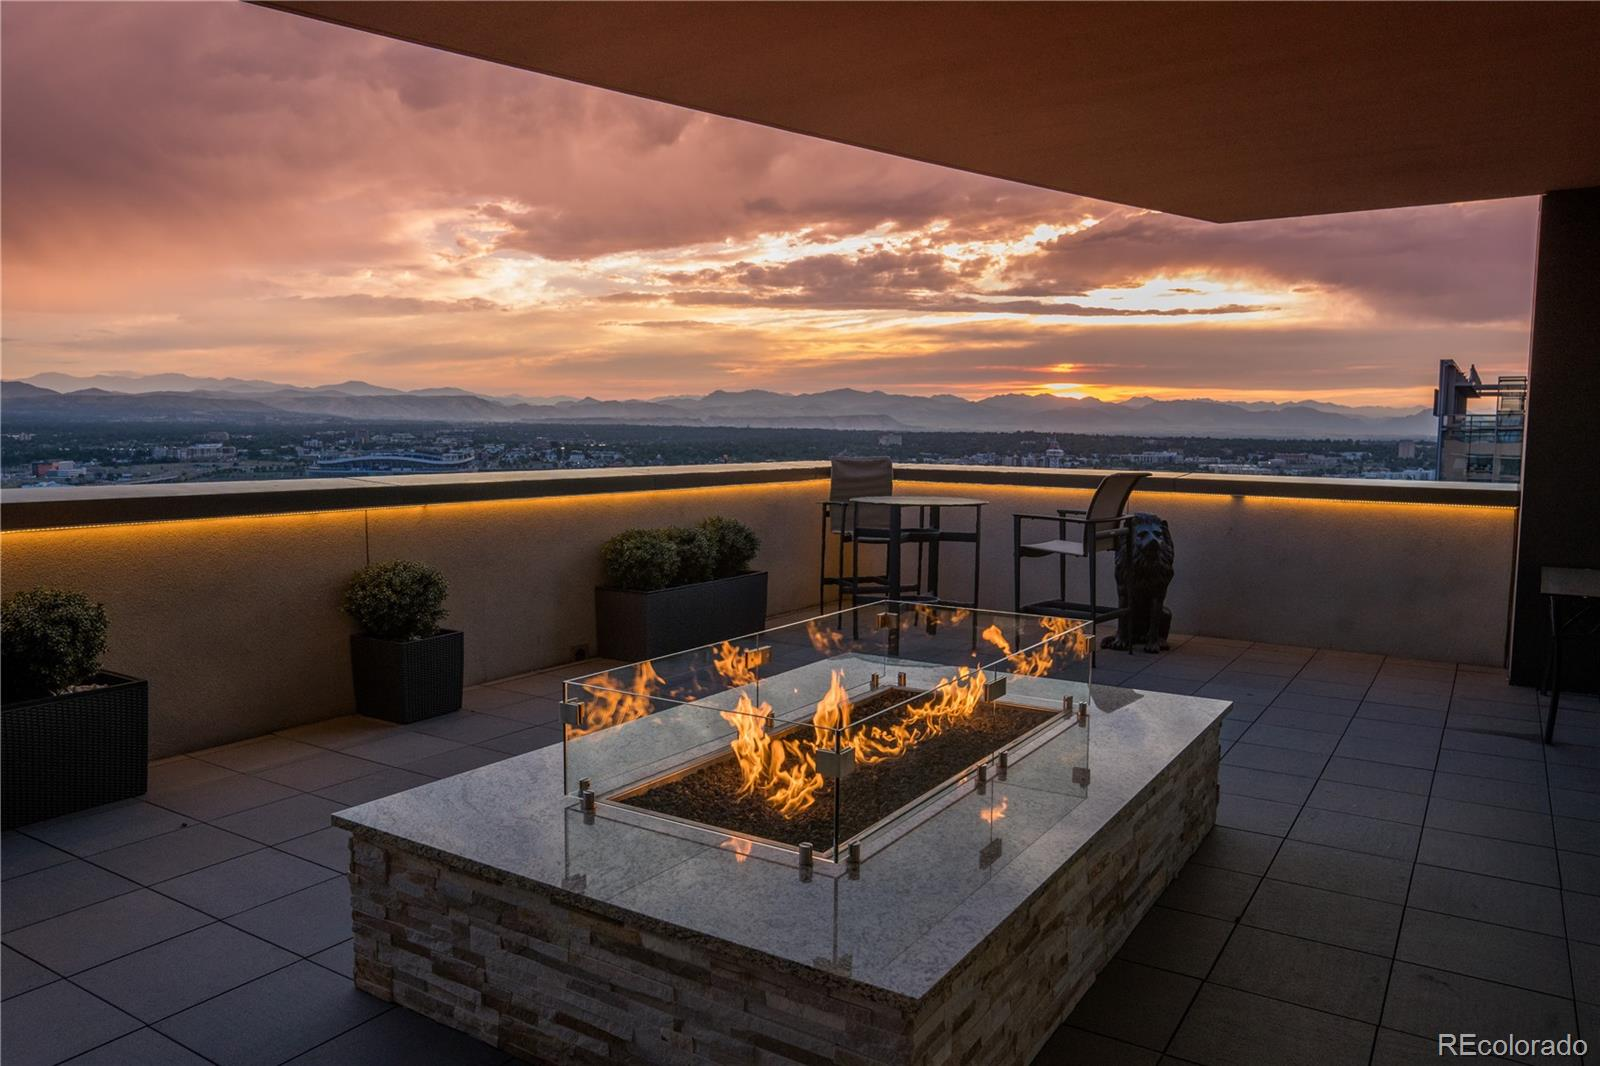 Welcome to Denver Sky Terrace.  It's not hard to imagine where the moniker comes from after seeing some of the images of this incredible home.  Most luxury homes are billed as one of a kind, but this one truly is!  Originally purchased as a single residence, the current owners purchased the adjacent home, and combined the two into something truly special. The list of features is long and precisely what you'd expect it should be - wide plank hardwood floors throughout, granite and stone countertops, custom storage and lighting solutions, Miele and Subzero appliances and home automation throughout.  The design of the home centers on gracious and open living and entertaining spaces, natural light, sun and air,  and of course, unparalleled views of the city and mountains beyond.  However, one of the key elements to what makes this home a one-and-only are the two enormous terraces - 615 square feet each - both with gas lines, speakers, and water hook ups, and one with built-in fire pit and barbecue grill.  It is the only home in the Four Seasons with such spectacular outdoor living and one of the very few that includes 4 reserved parking spaces, and two storage units.  Of course, what truly separates this home from other large residences in the City is that it sits atop the Four Seasons Hotel, which means you'll have access to a set of services and amenities that cannot be found anywhere else in Denver.   This truly is a home that will never be duplicated in Denver again, and now is your chance to own it and make it yours!